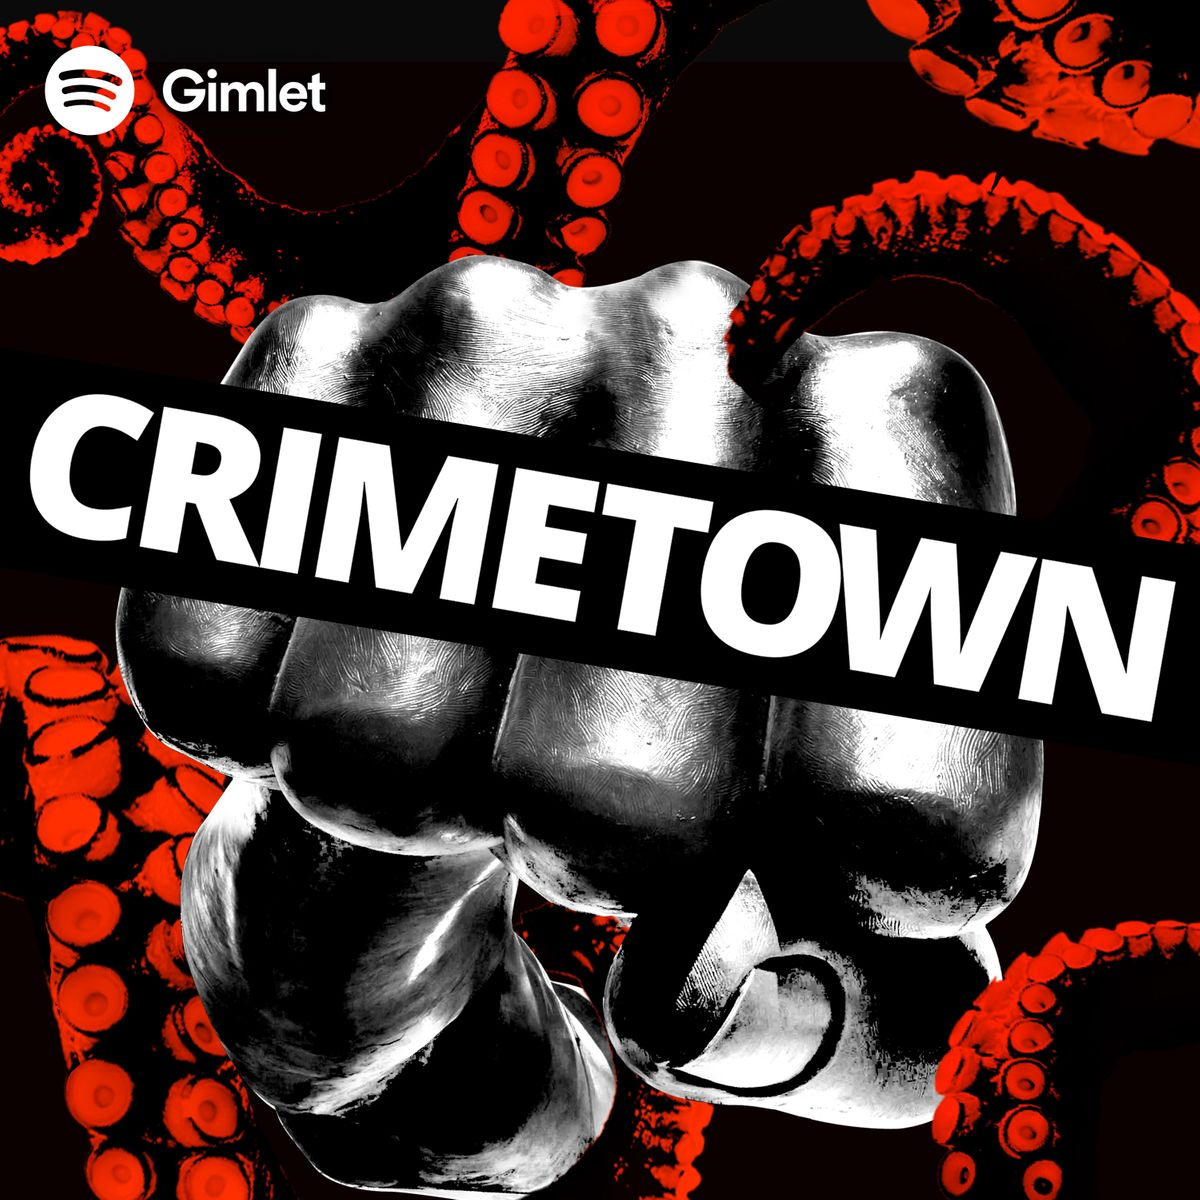 Crimetown Podcast Why Season 2 Is All About Detroit Why dig when we have records? crimetown season 2 by gimlet binge on spotify